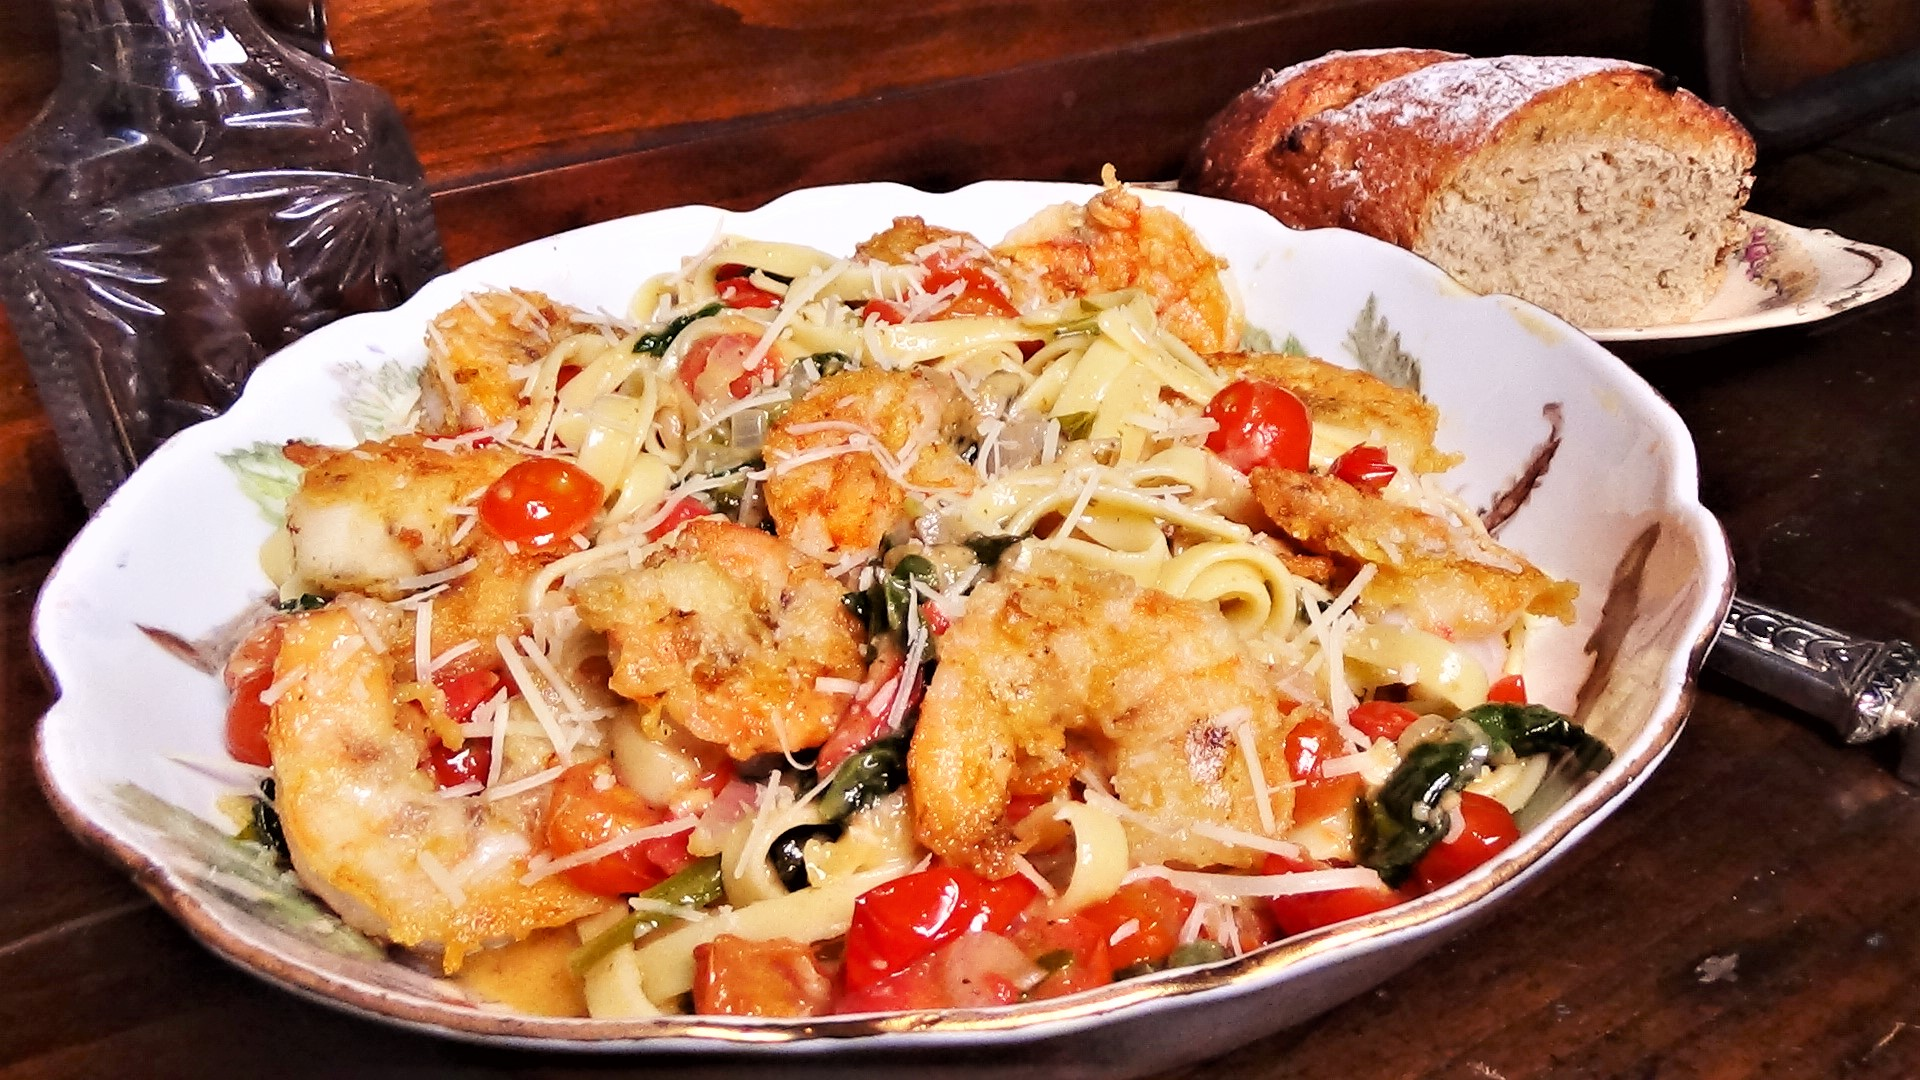 Fettuccini with shrimp, tomatoes and spinach